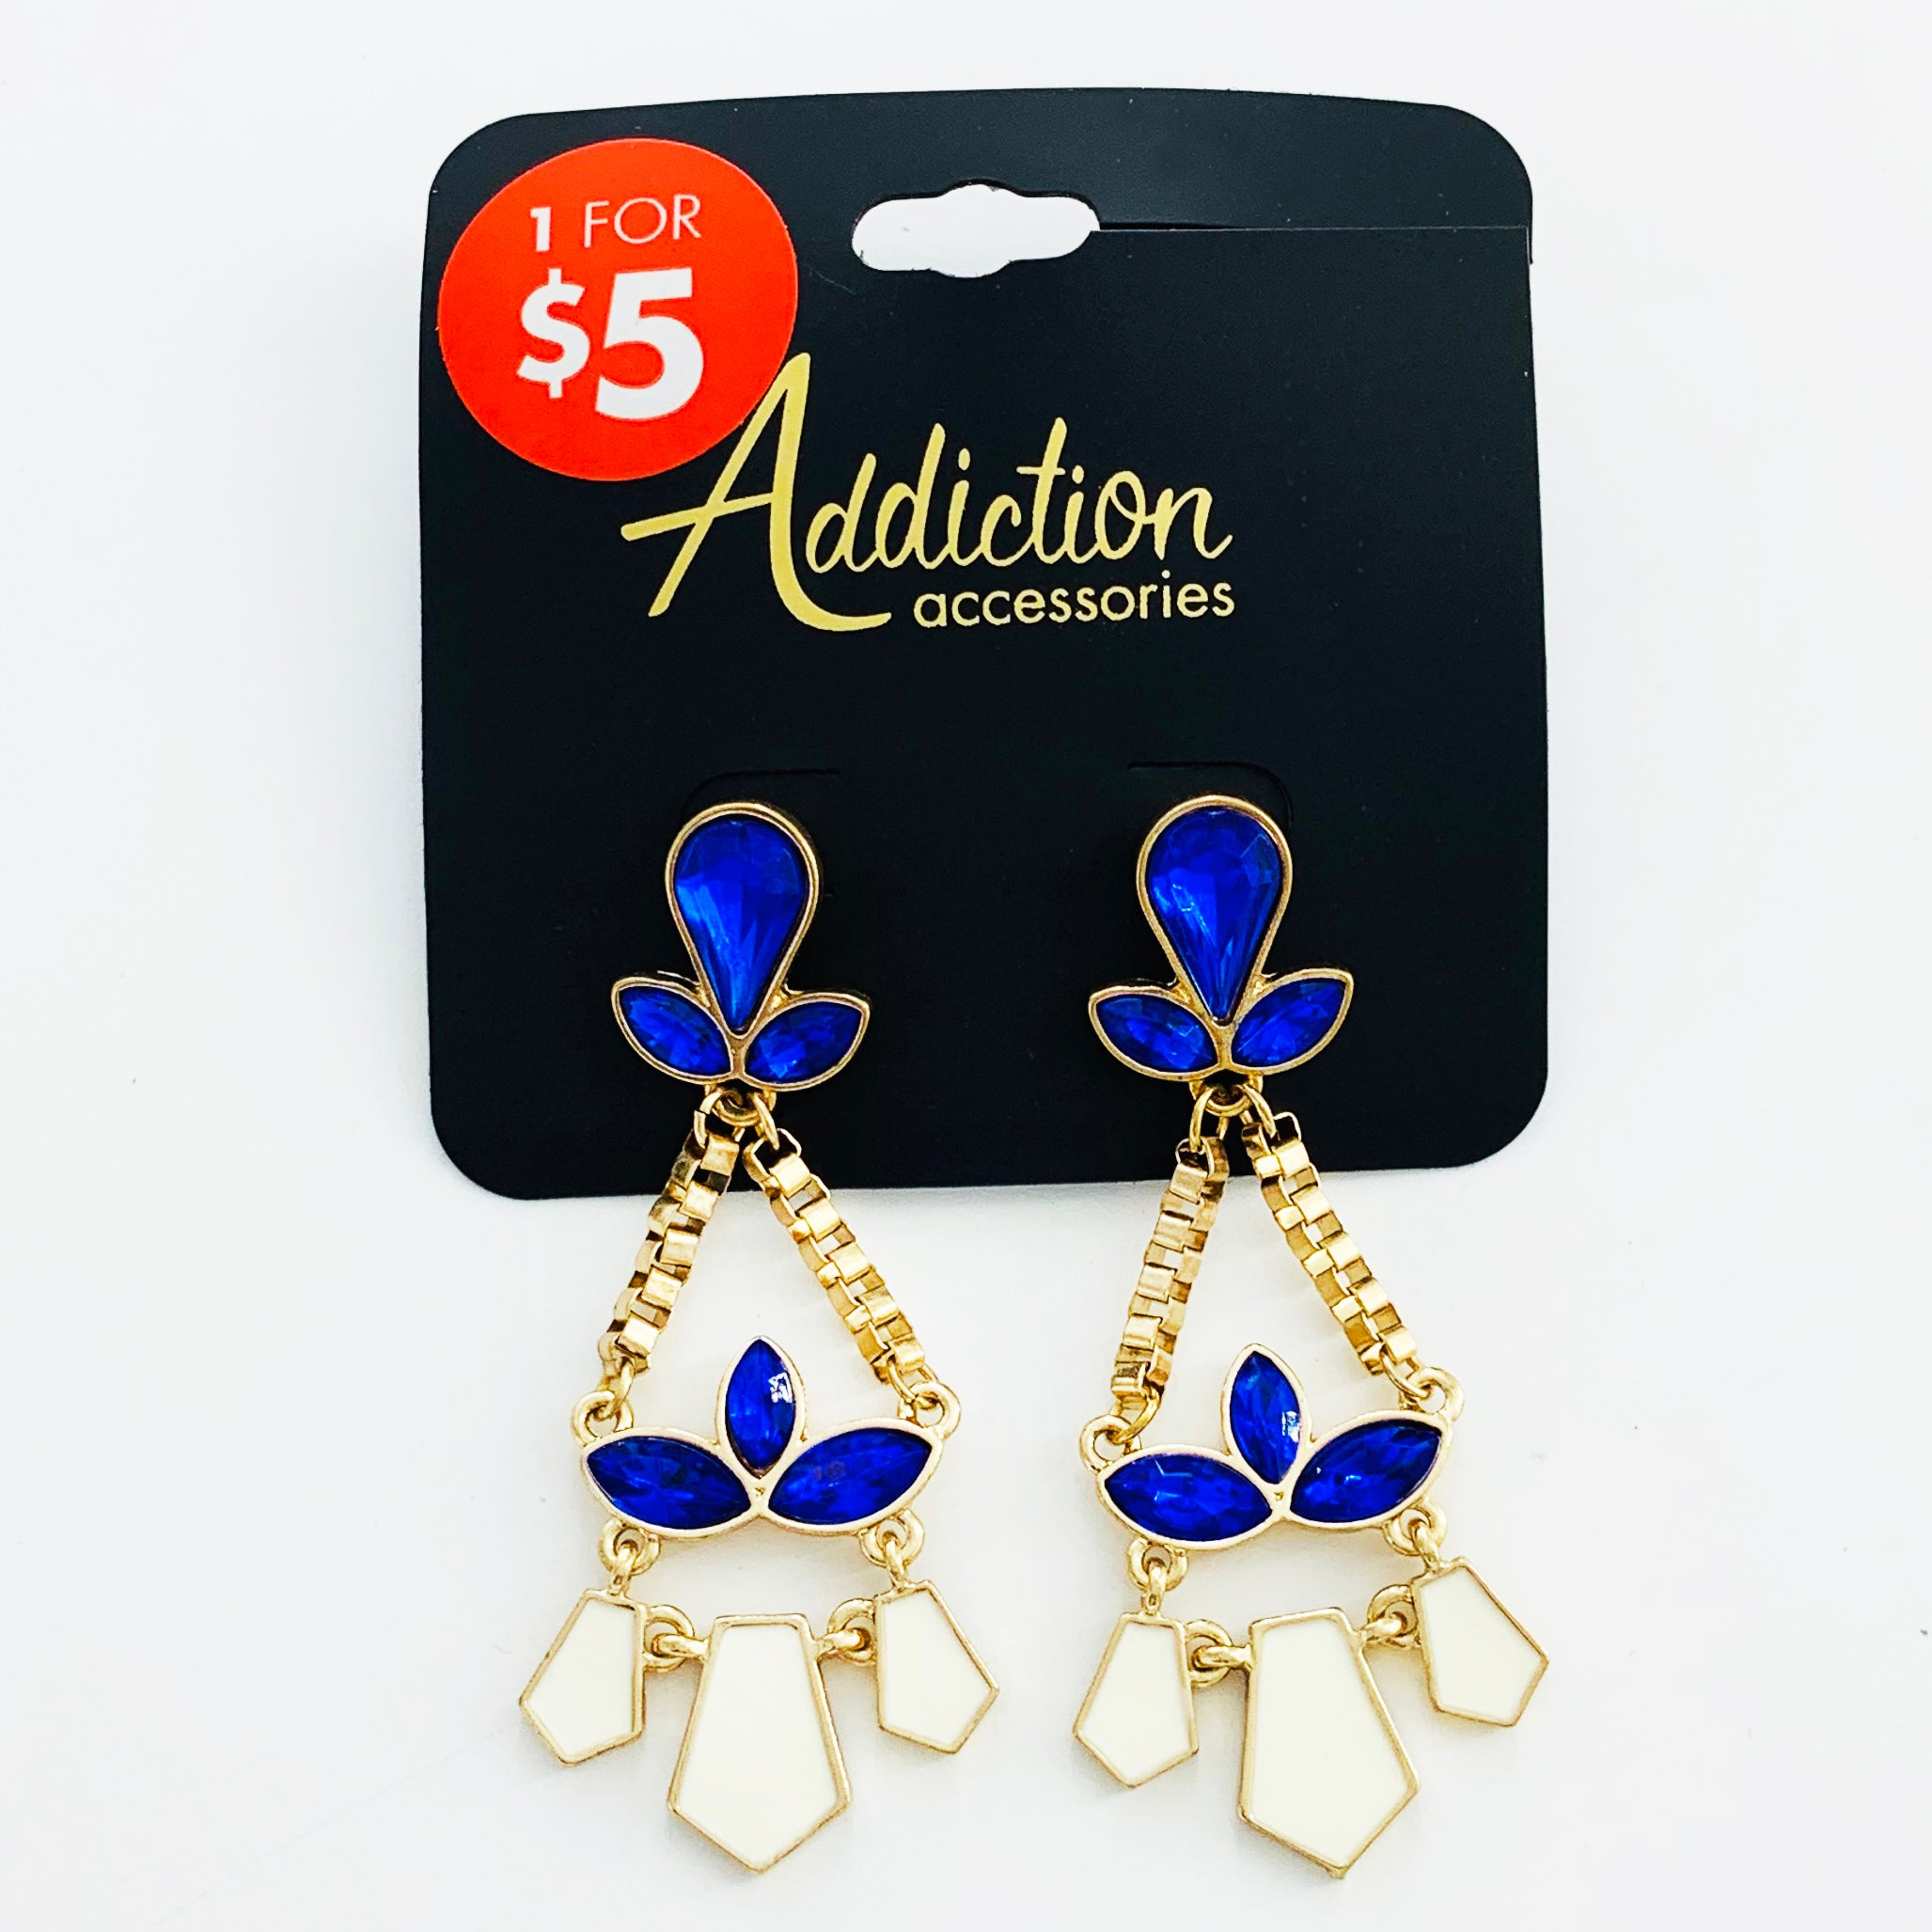 Earrings with blue and white stones